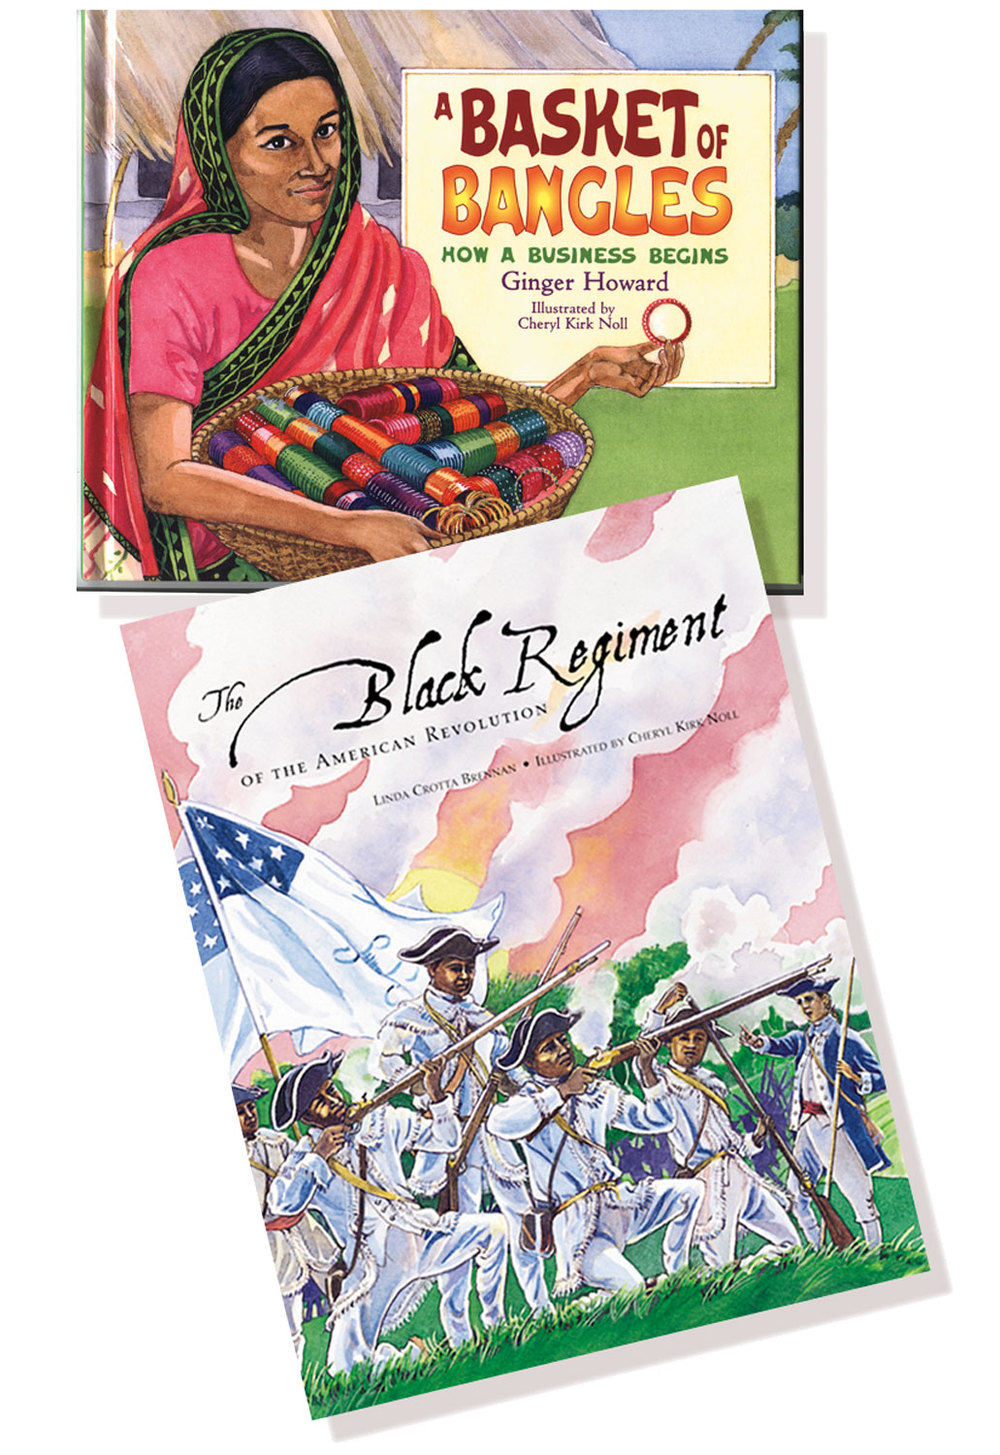 A Basket of Bangles, and the Black Regiment of the American Revolution, illustrated by Cheryl Kirk Noll